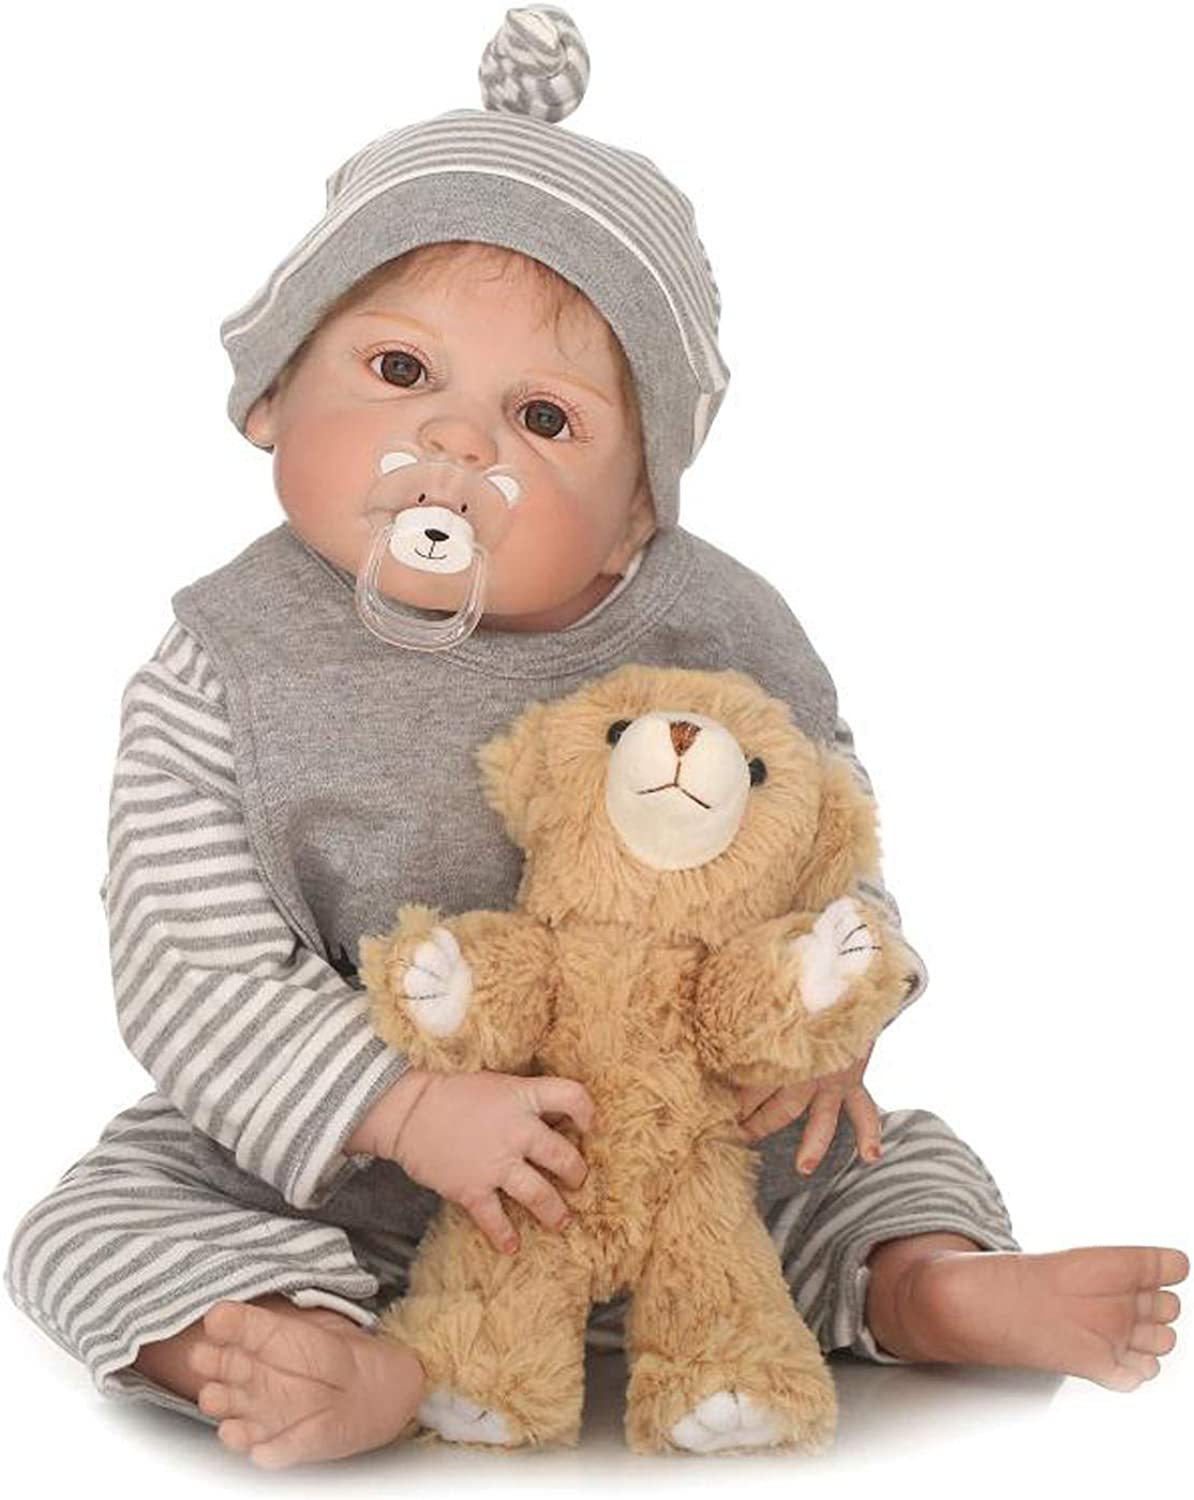 TERABITHIA 22 inch Rare Alive Cute Reborn Toddler Doll,Boy Doll Handcrafted in SiliconeLike Vinyl Full Body